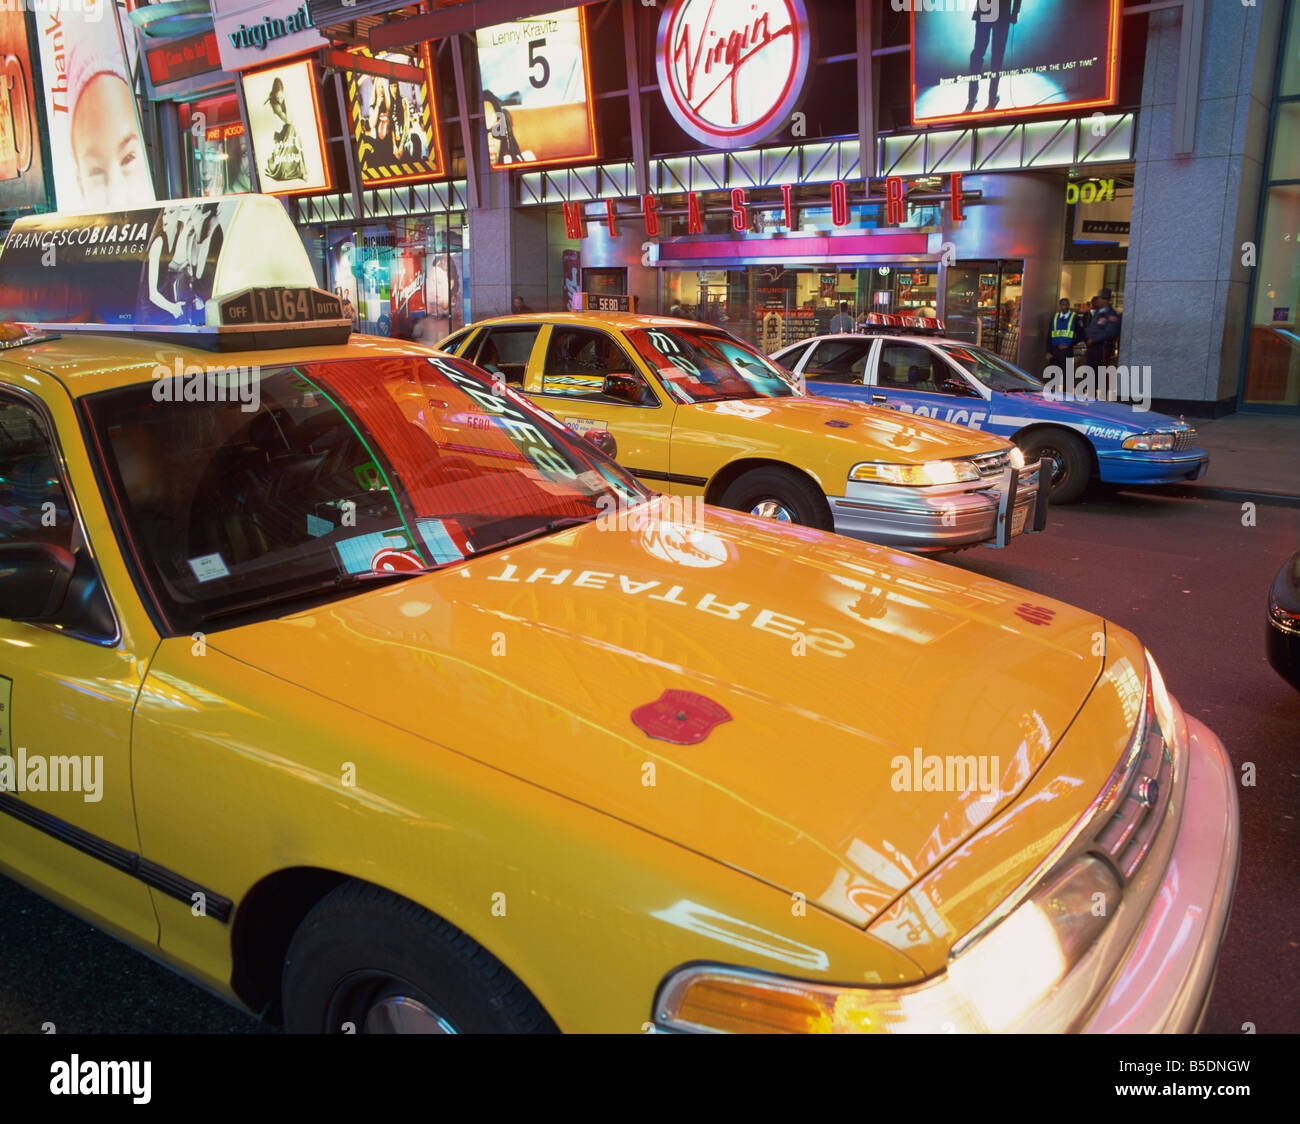 yellow-cabs-on-the-street-at-night-in-ti